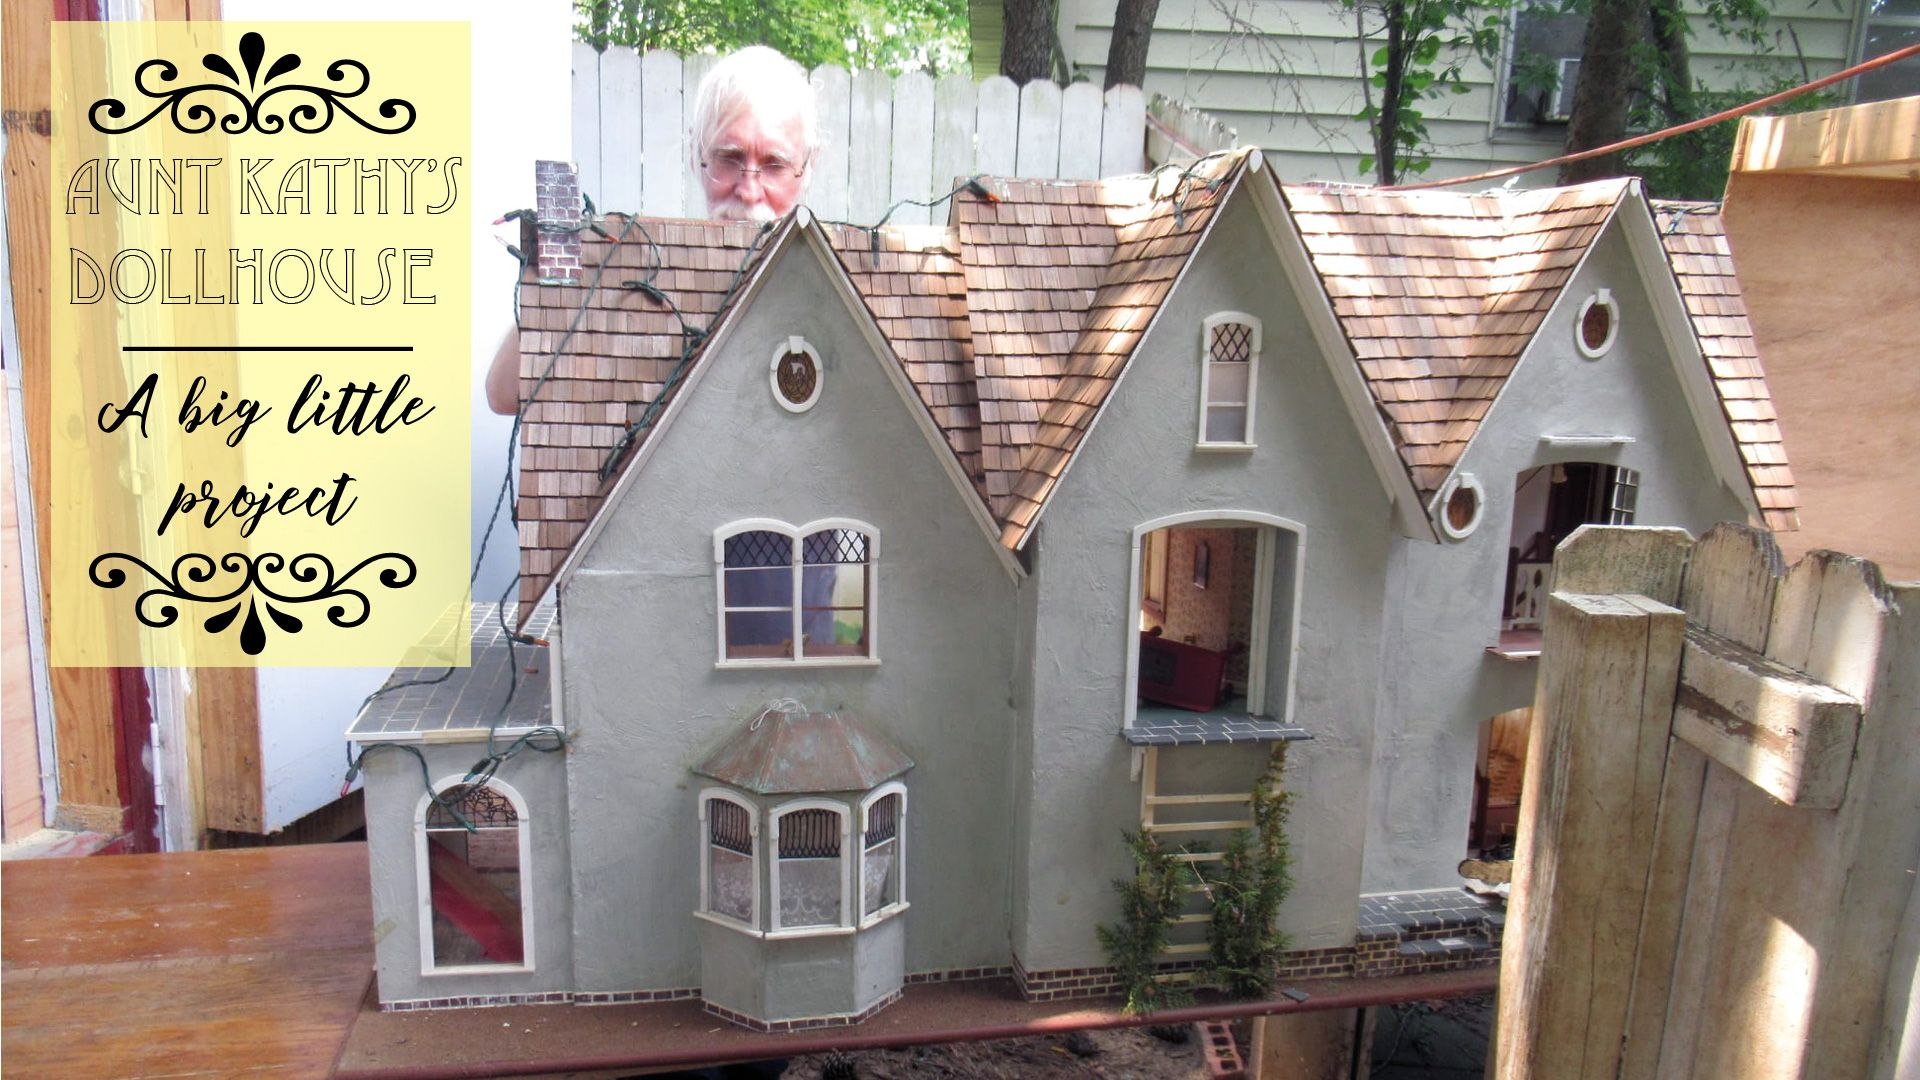 Our own project: bringing Aunt Kathy's dollhouse back to life